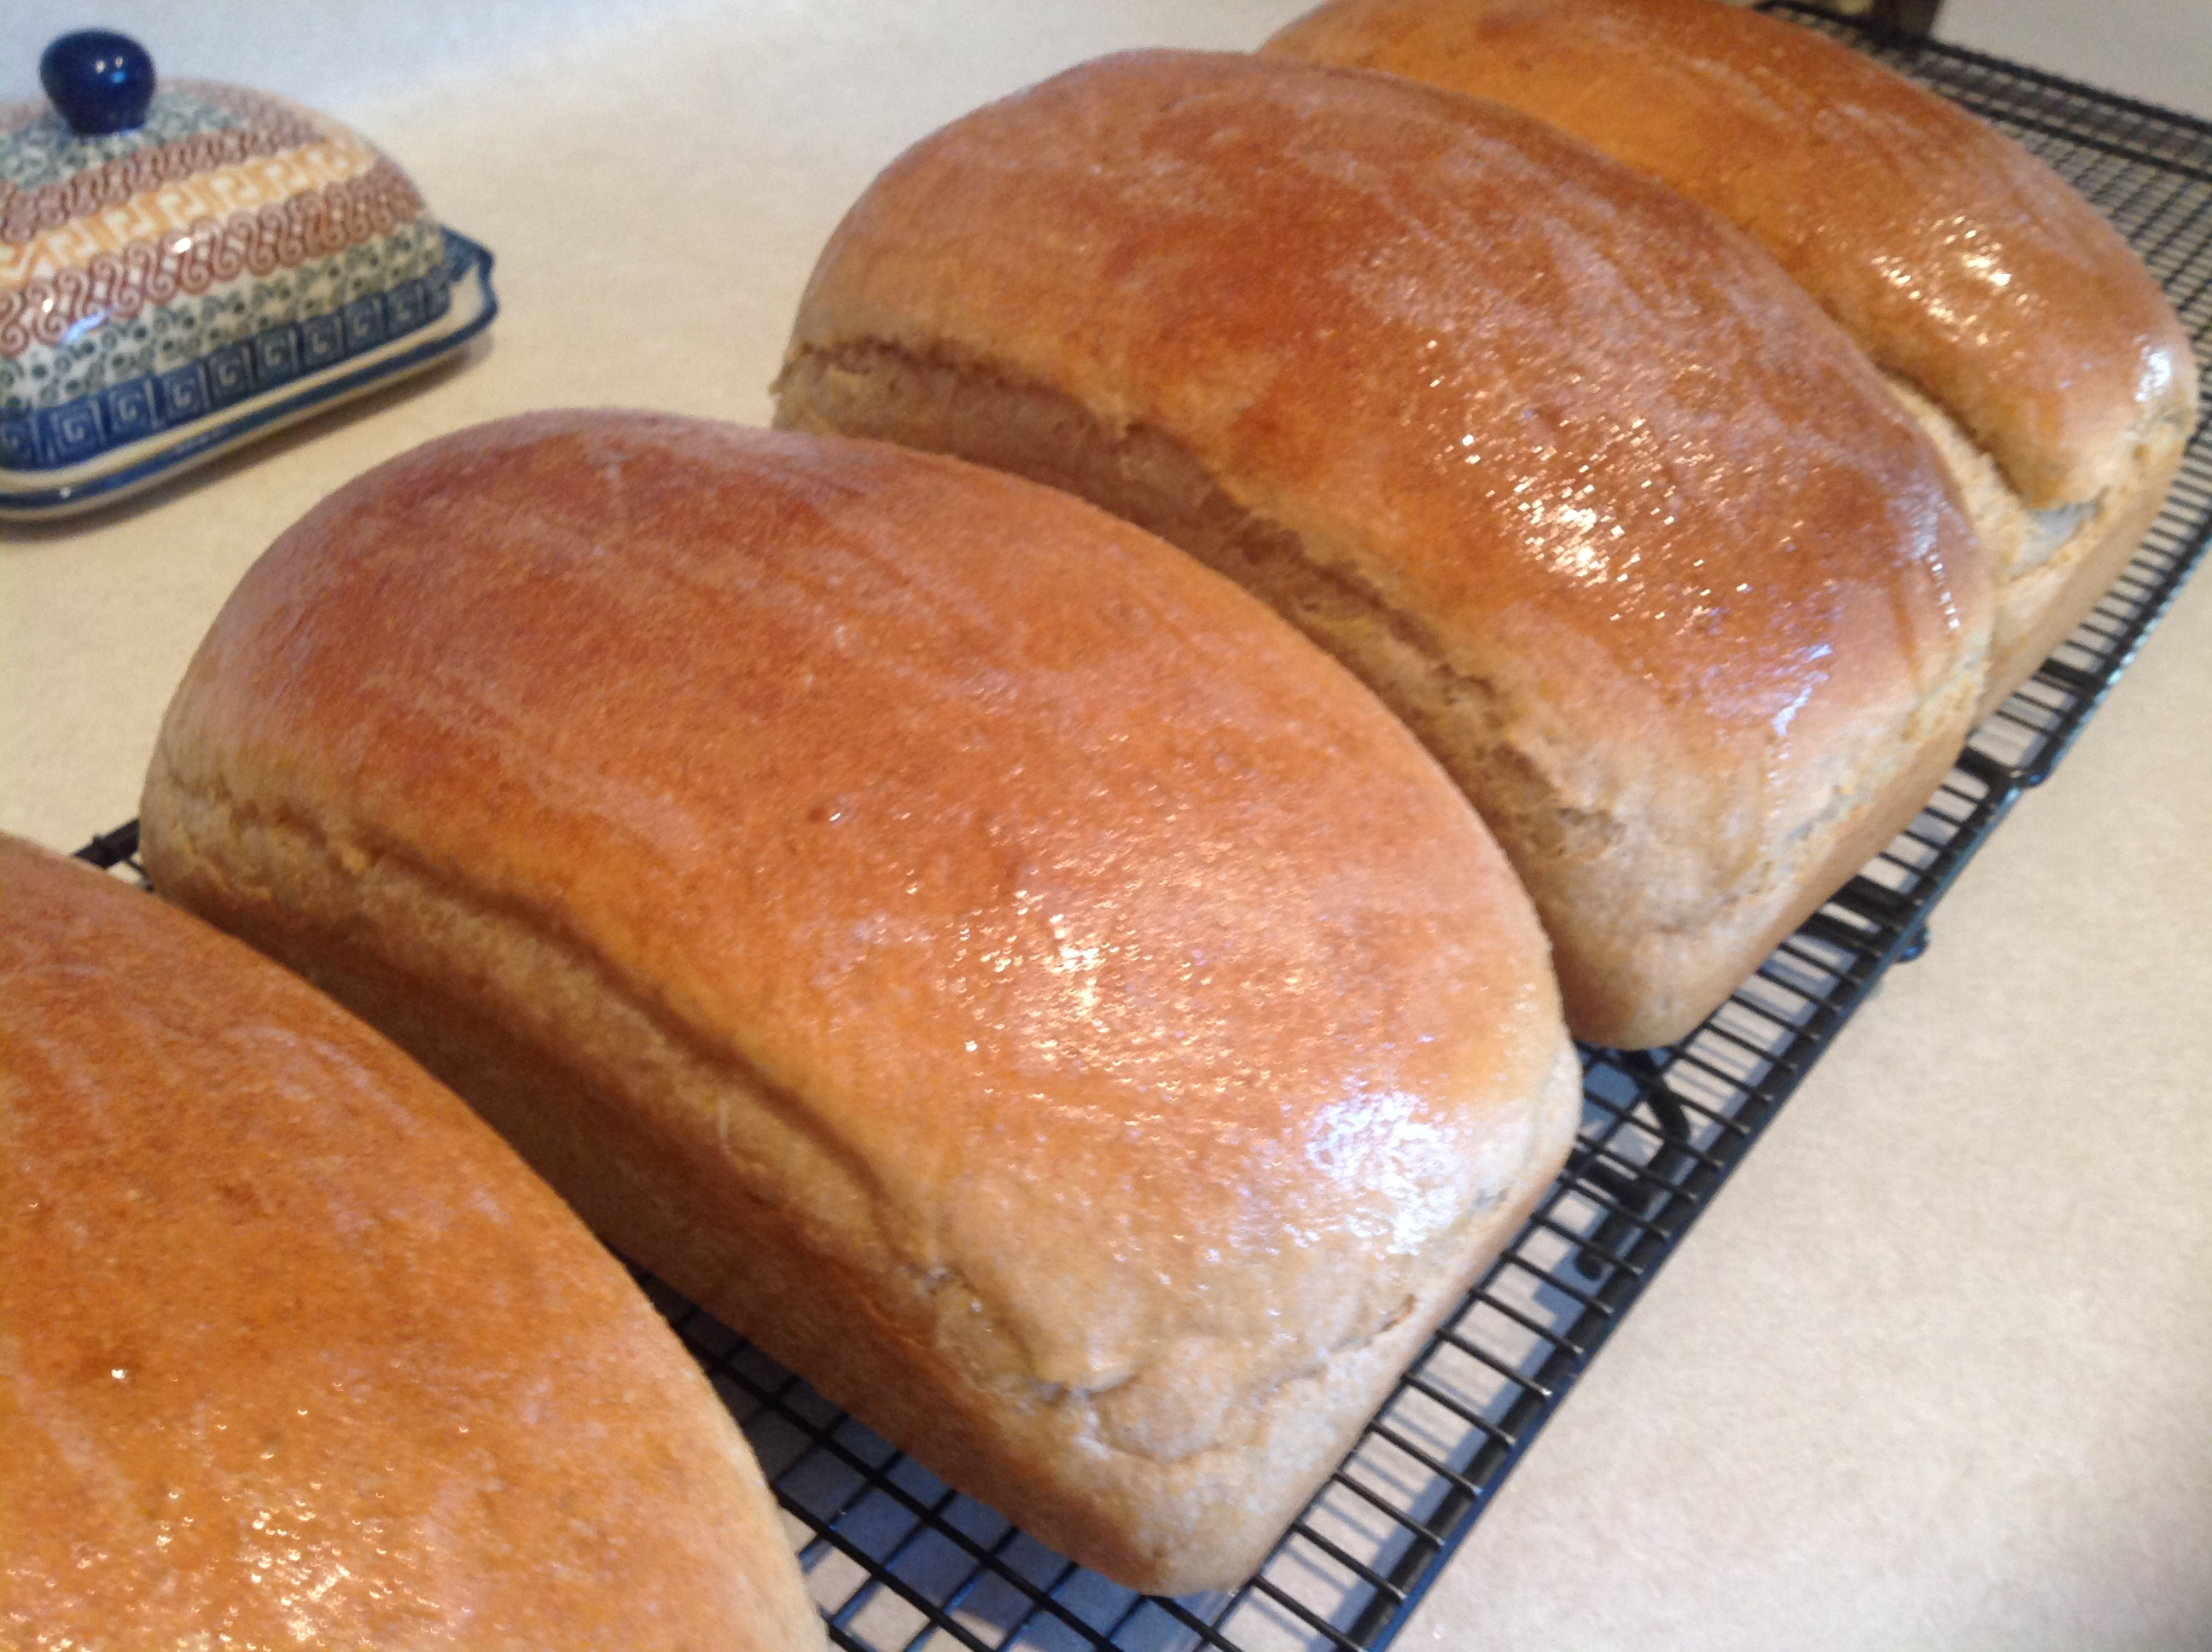 Homemade bread – mmmm